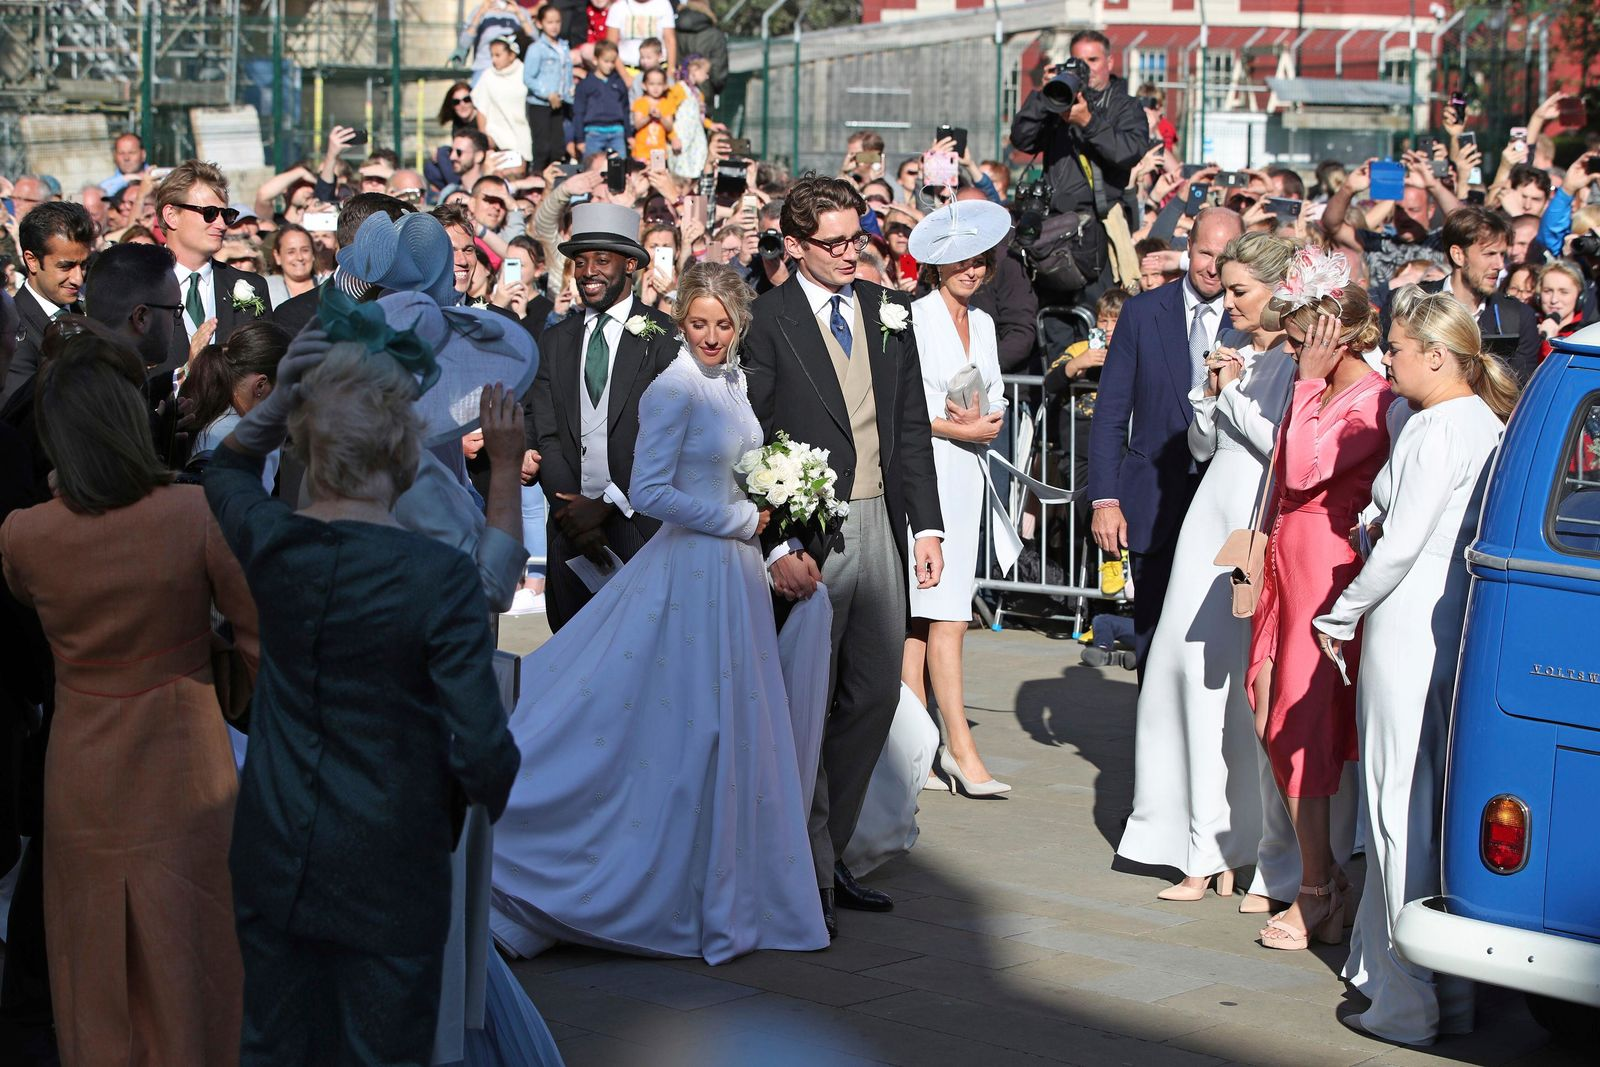 Newly married Ellie Goulding and Caspar Jopling leave York Minster after their wedding, in York, England, Saturday Aug. 31, 2019. (Danny Lawson/PA via AP)